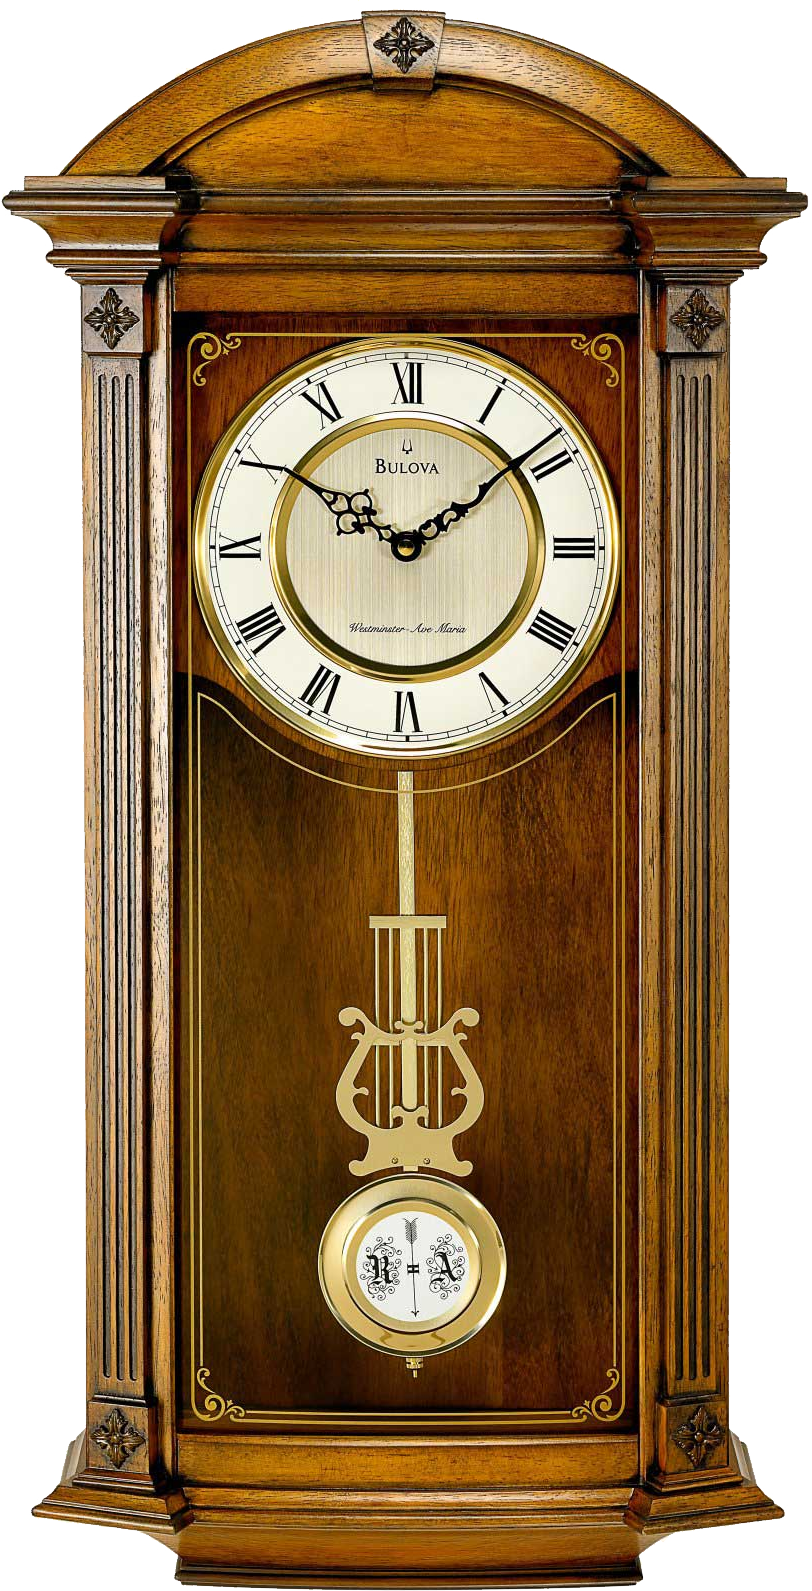 Pin By Hopeless On Clip Art Images 2 Chiming Wall Clocks Pendulum Wall Clock Old Fashioned Clock